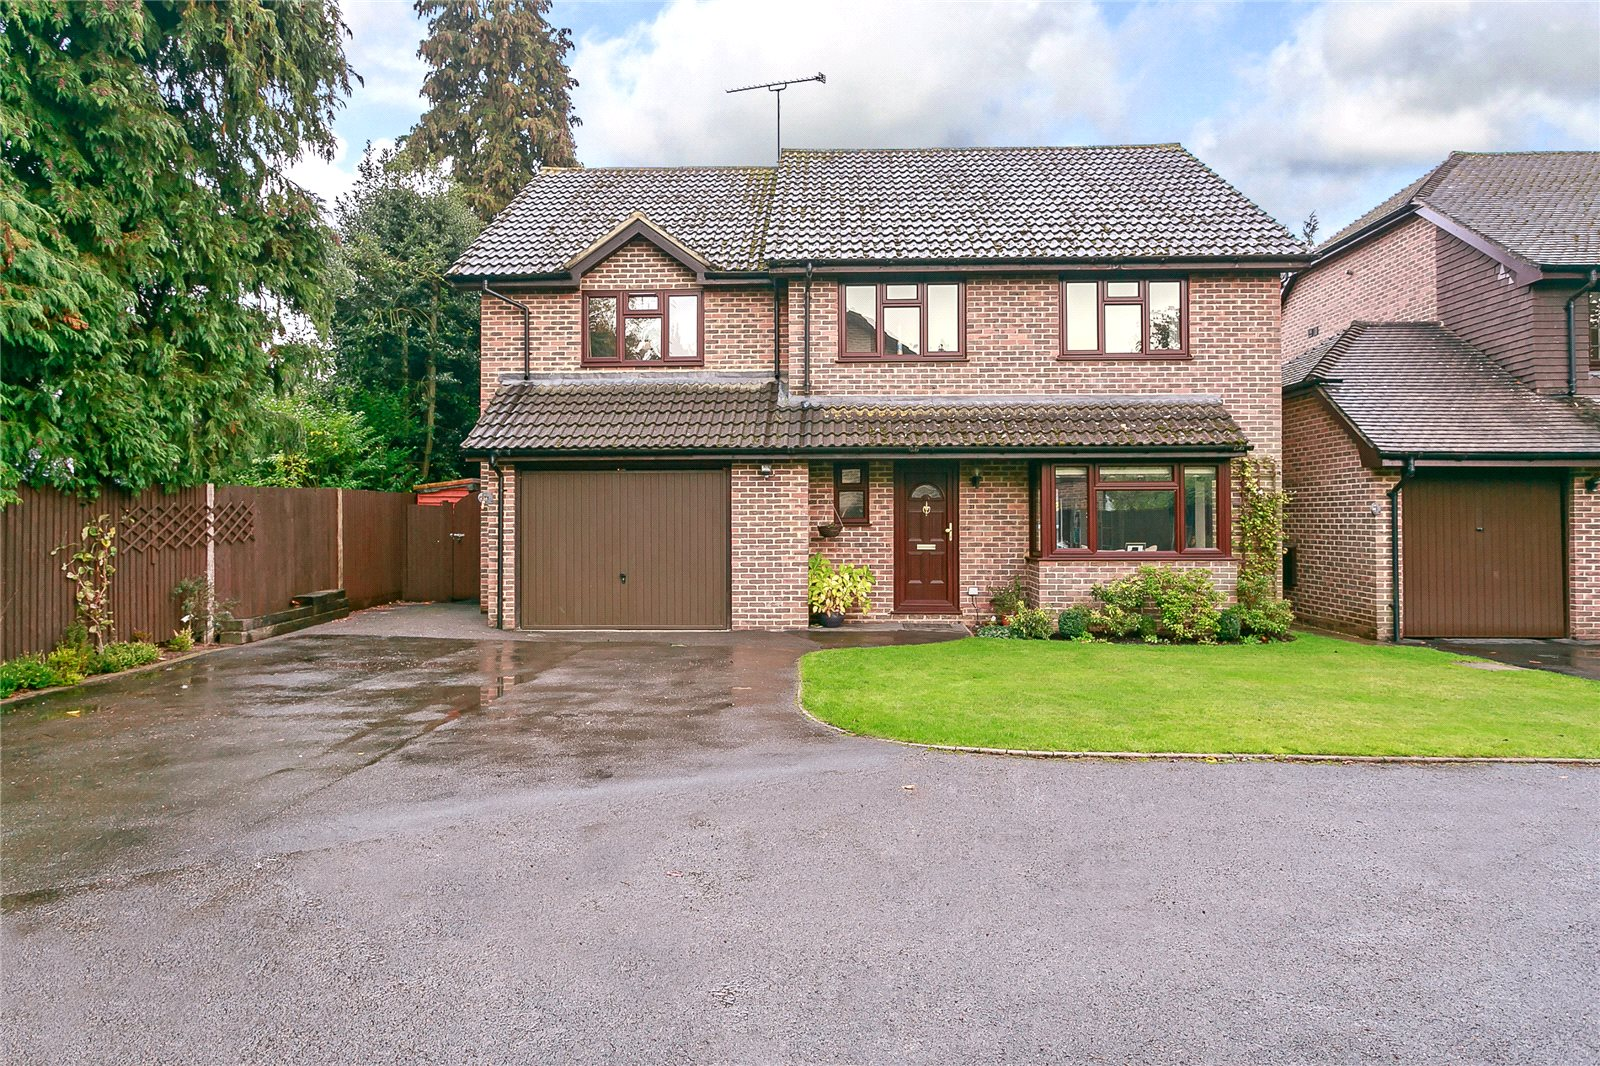 Tek Ailelik Ev için Satış at Newark Road, Windlesham, Surrey, GU20 Windlesham, Ingiltere